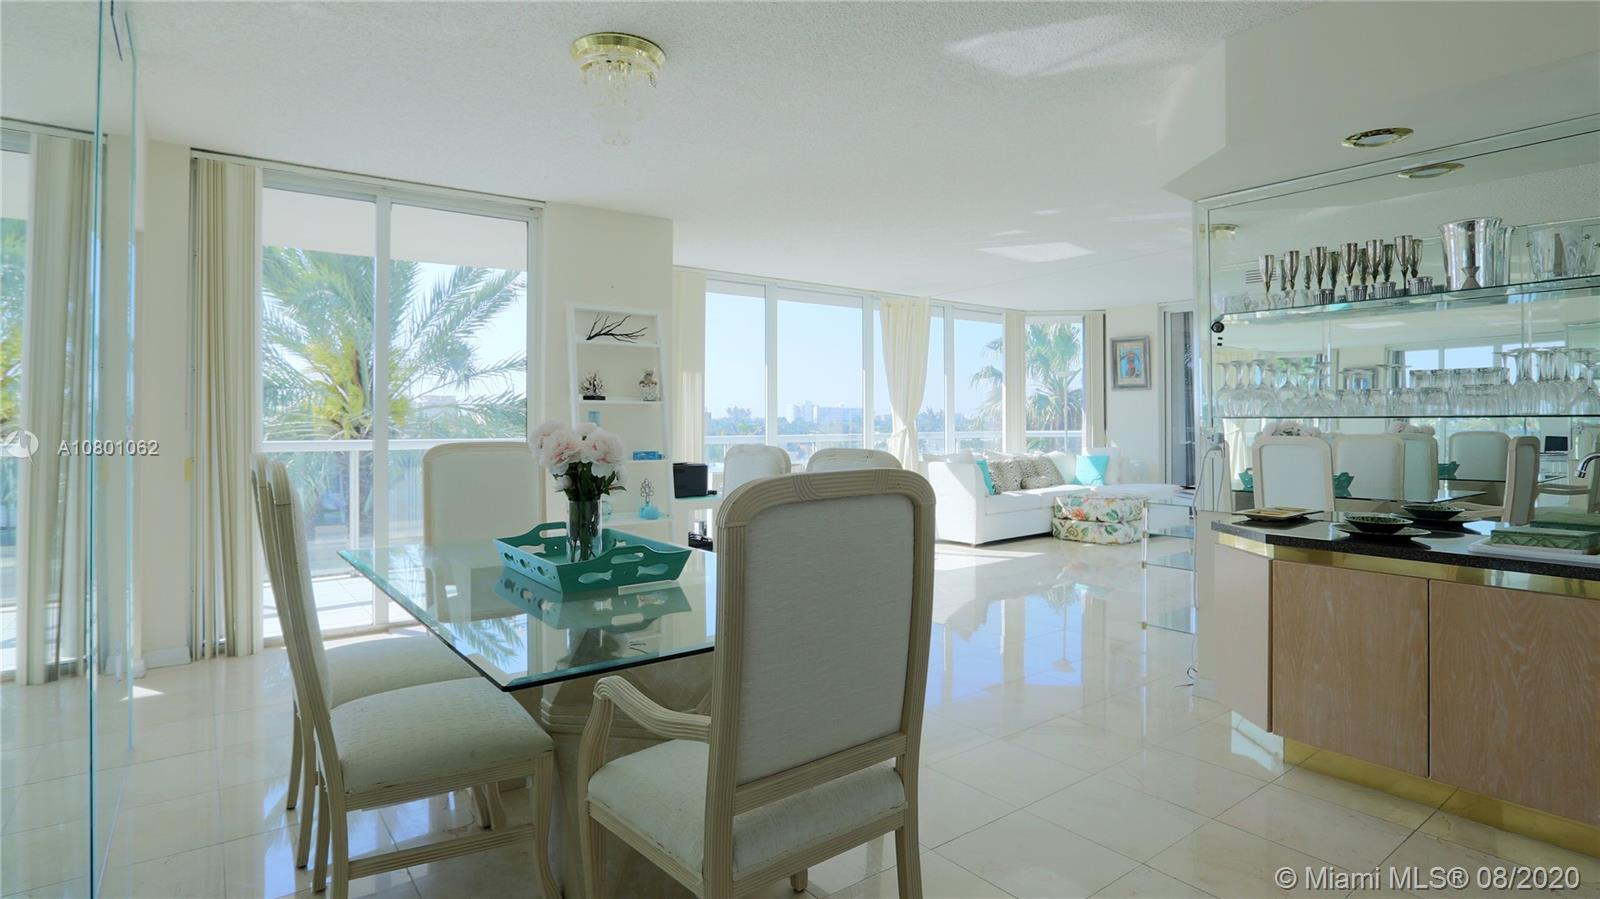 Located in the exclusive Mirage condo building in Surfside (right on the beach). Come see this brigh